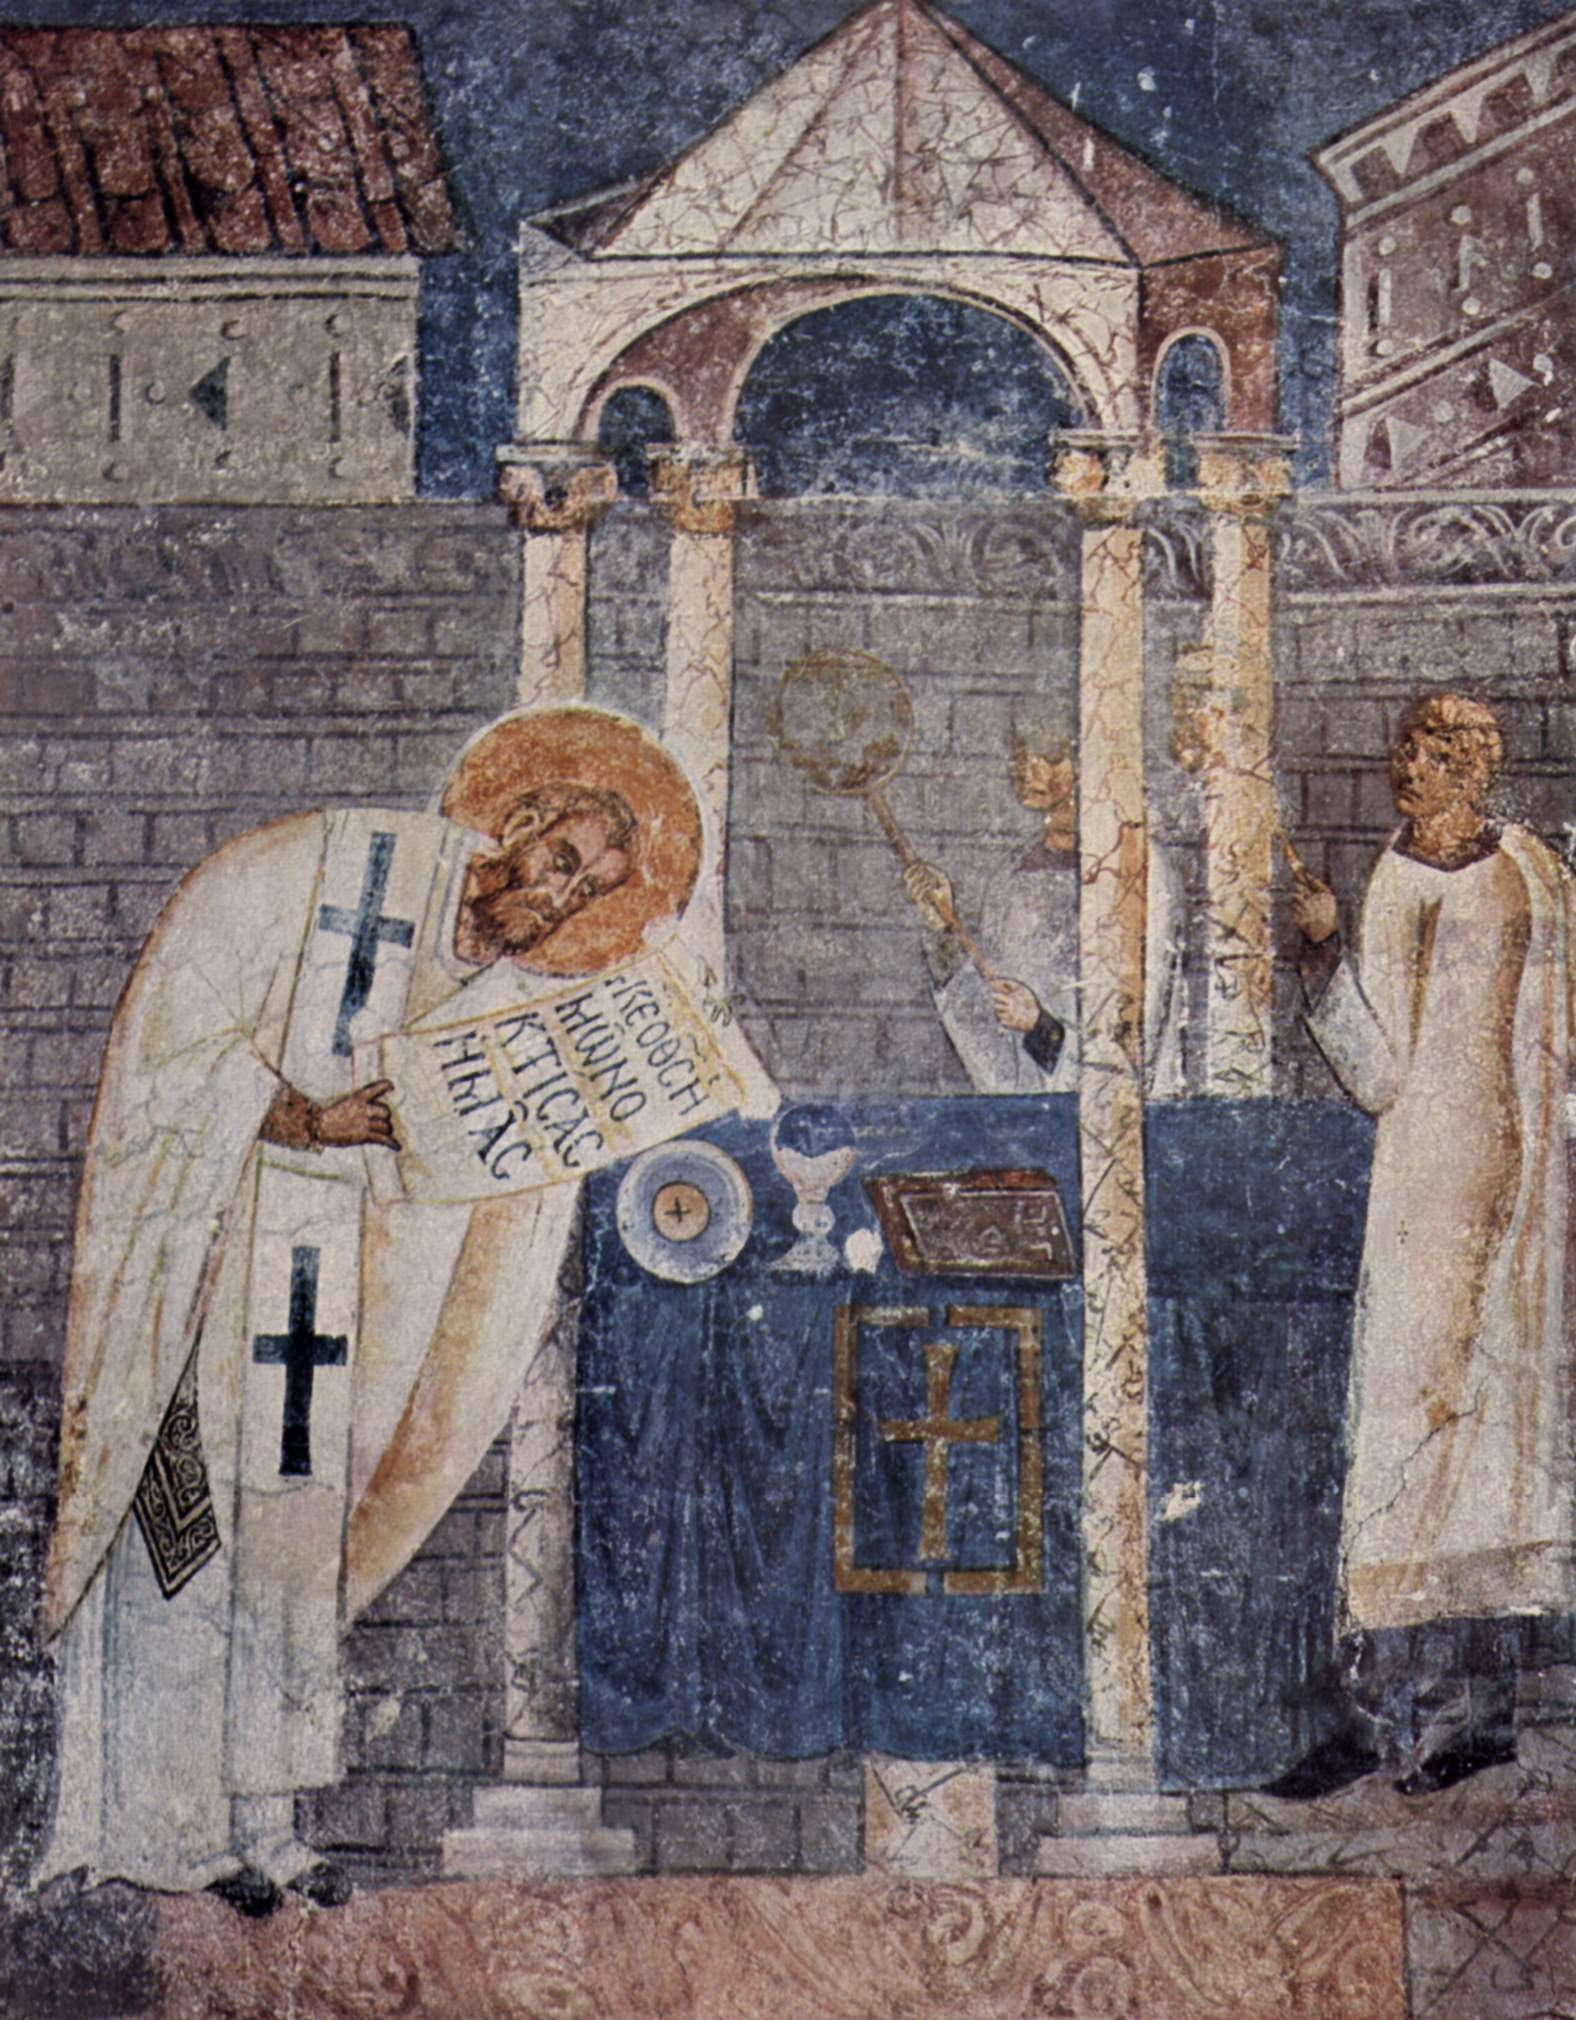 St Basil before the holy altar, celebrating the Divine Liturgy. Byzantine fresco of the 11th century in the church of St Sophia in Ohrid, in modern-day FYROM.